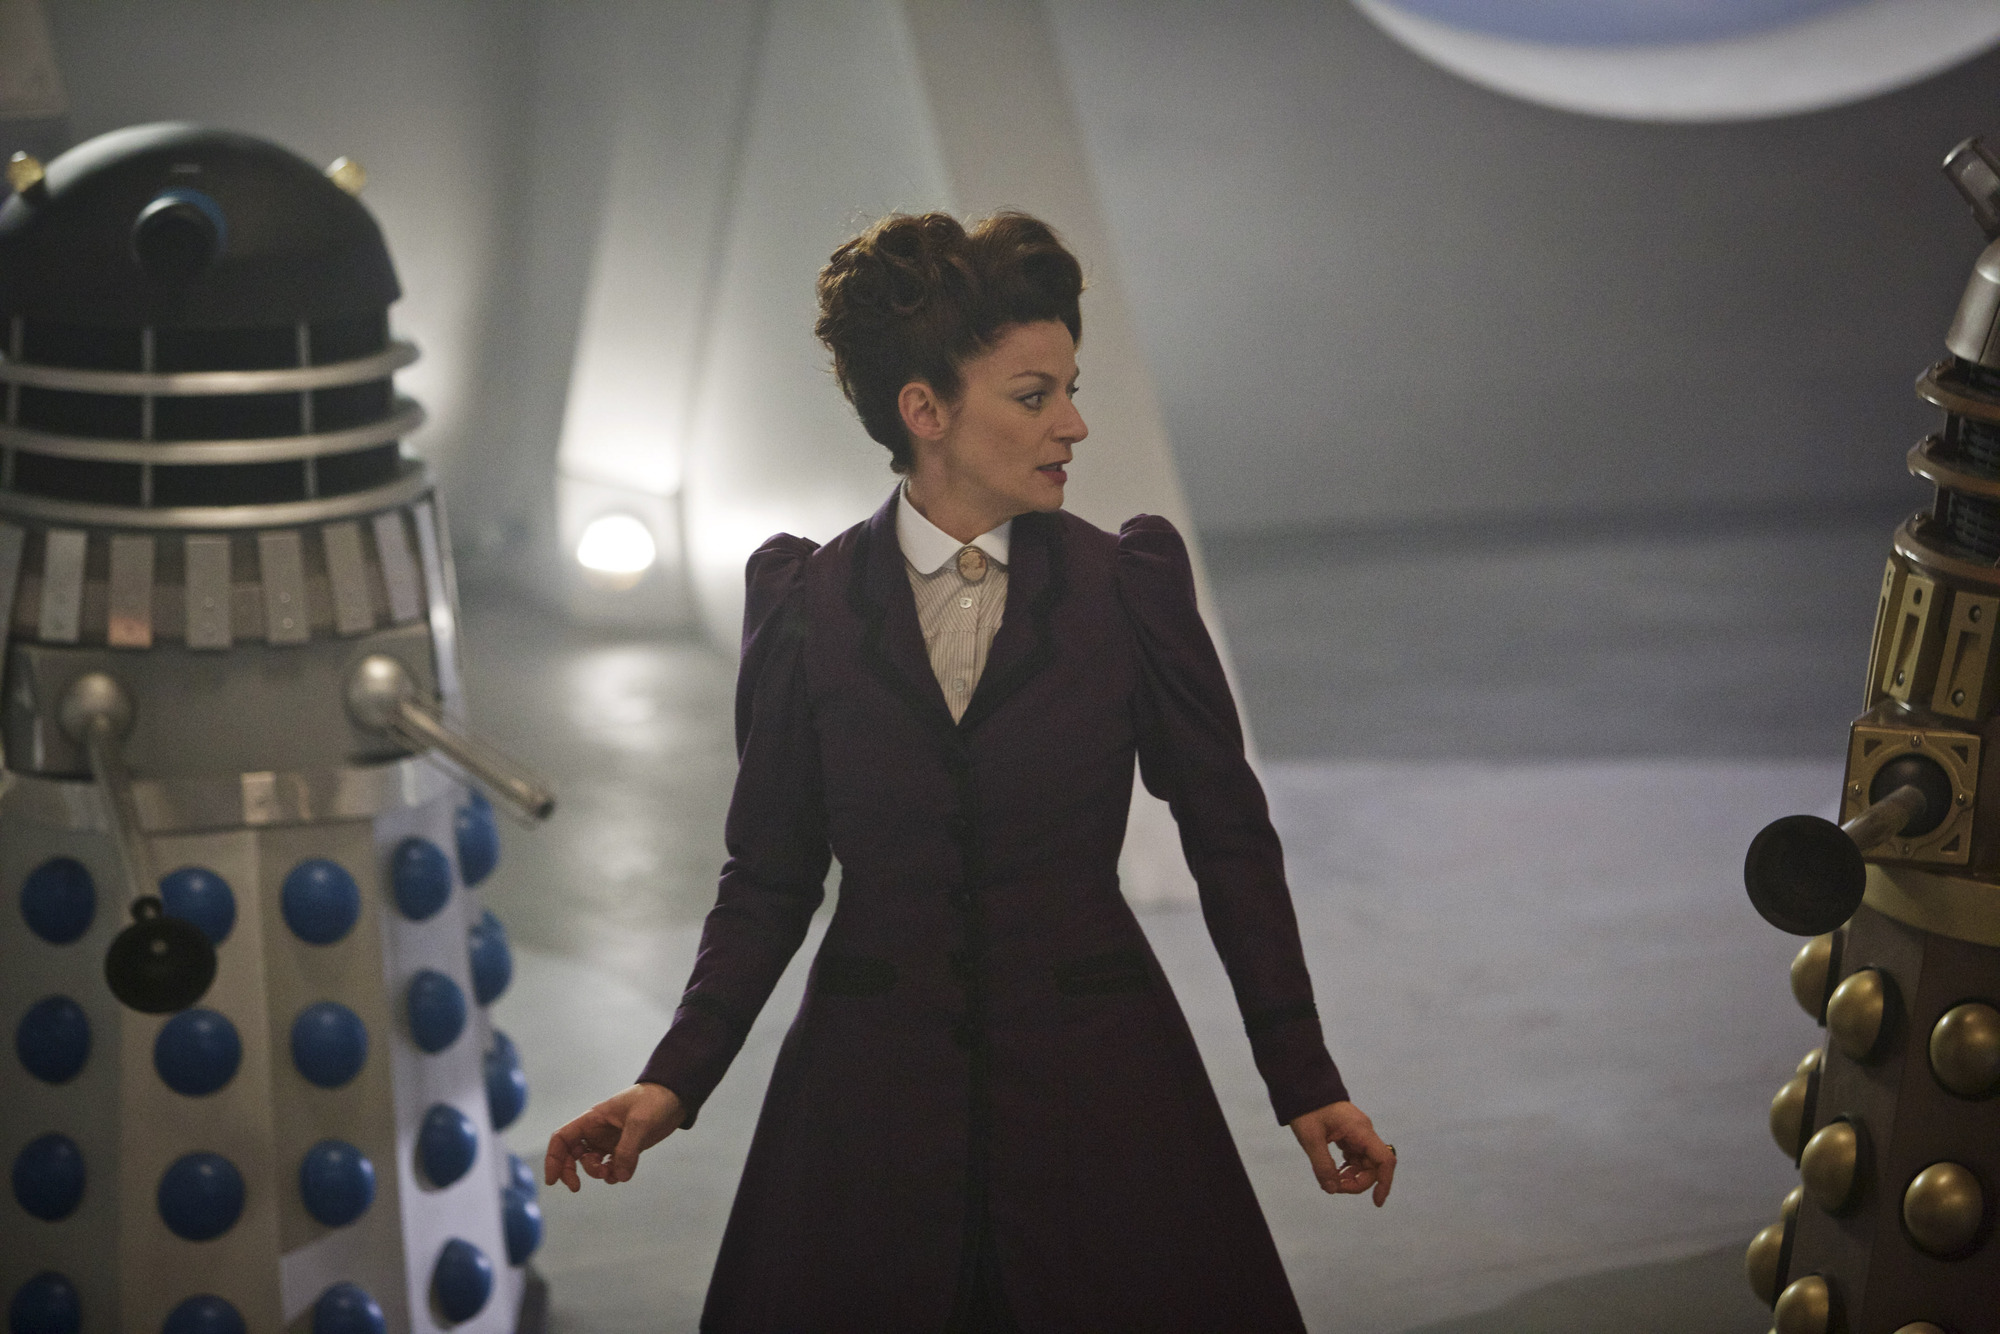 Doctor Who series 9, episode 2 starring Michelle Gomez as Missy aka The Master